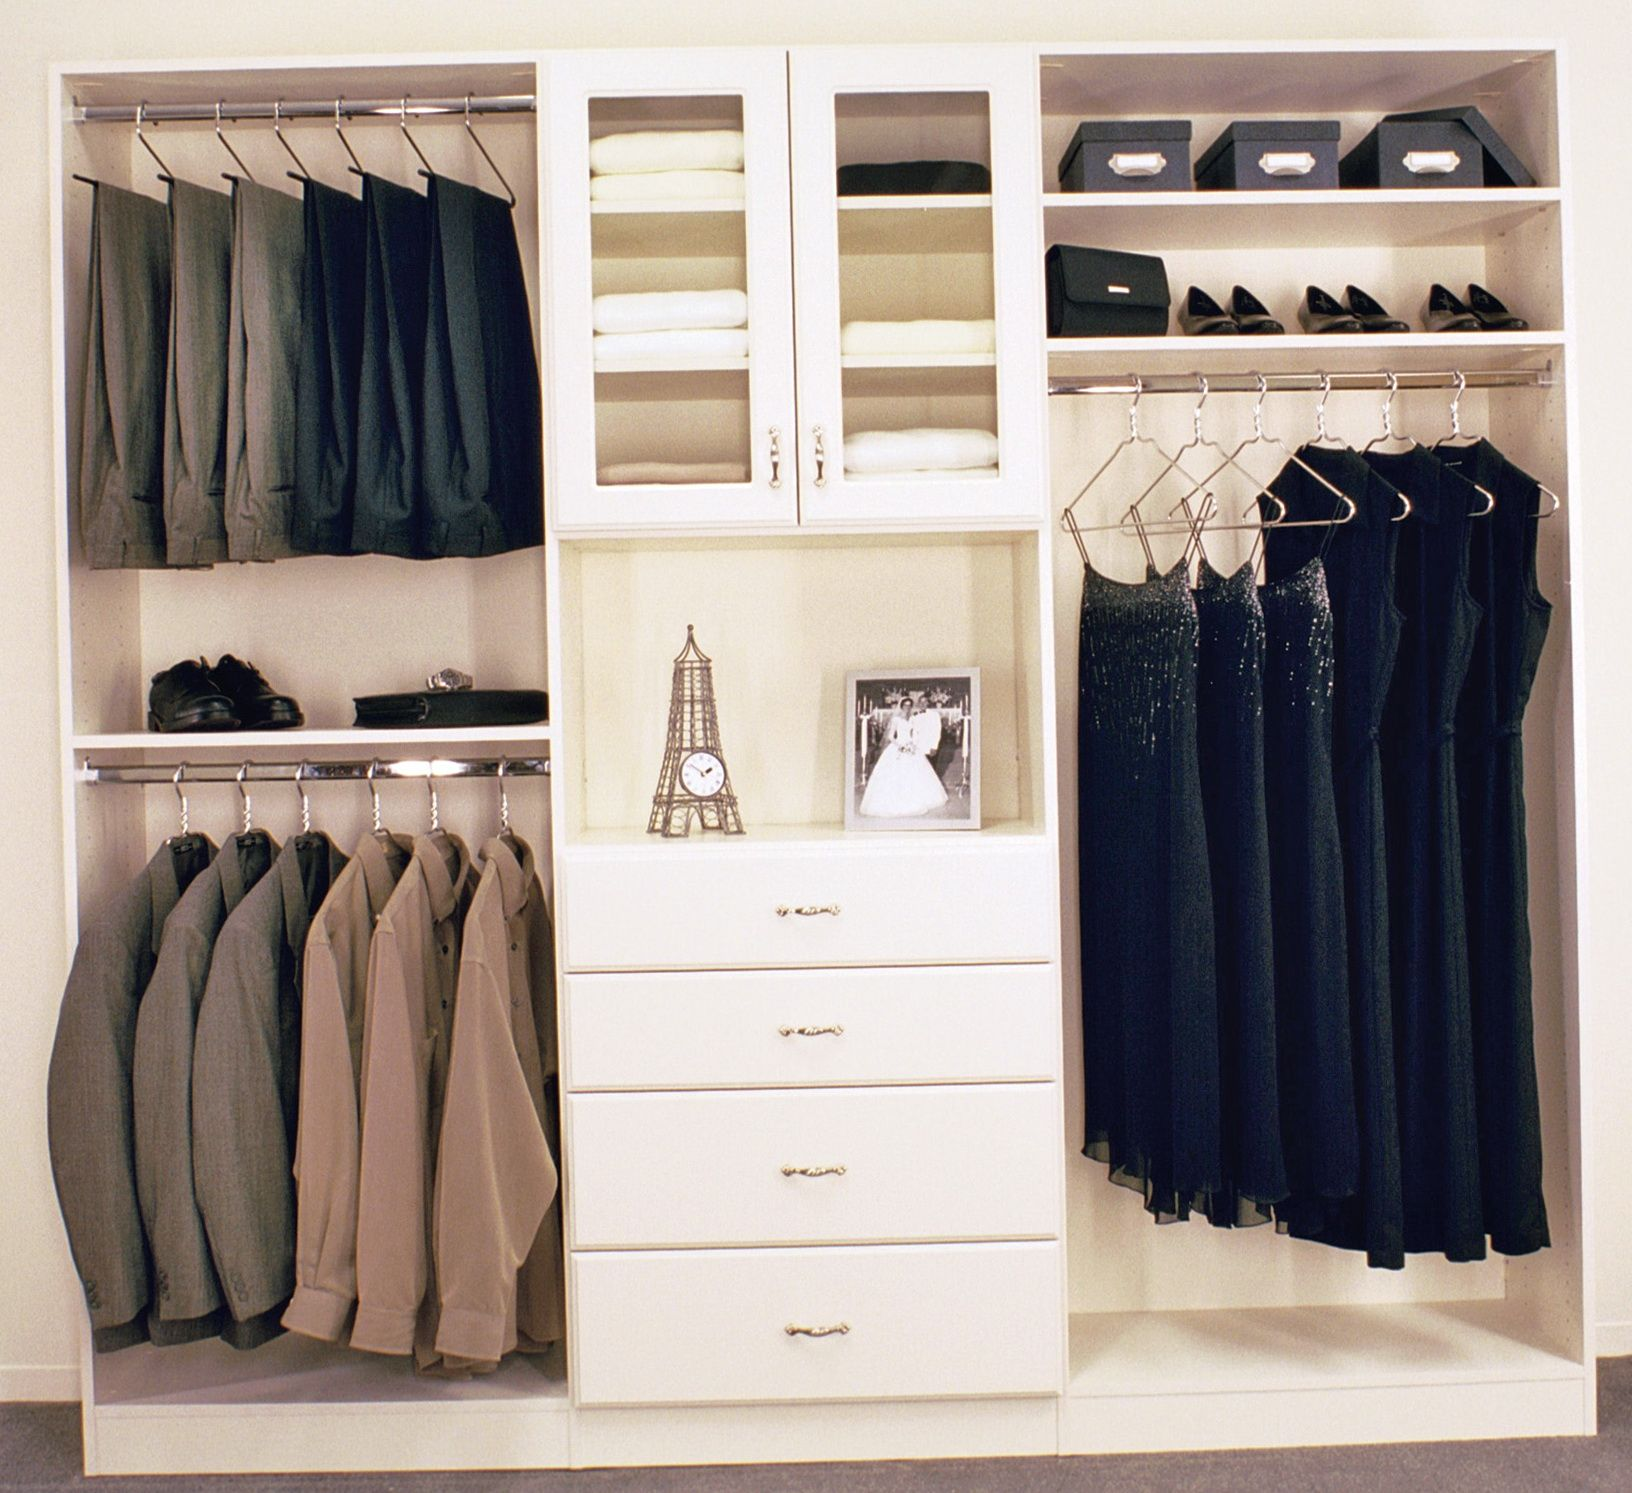 small closets ideas - Interior Design Ideas containerhdd | closet ...